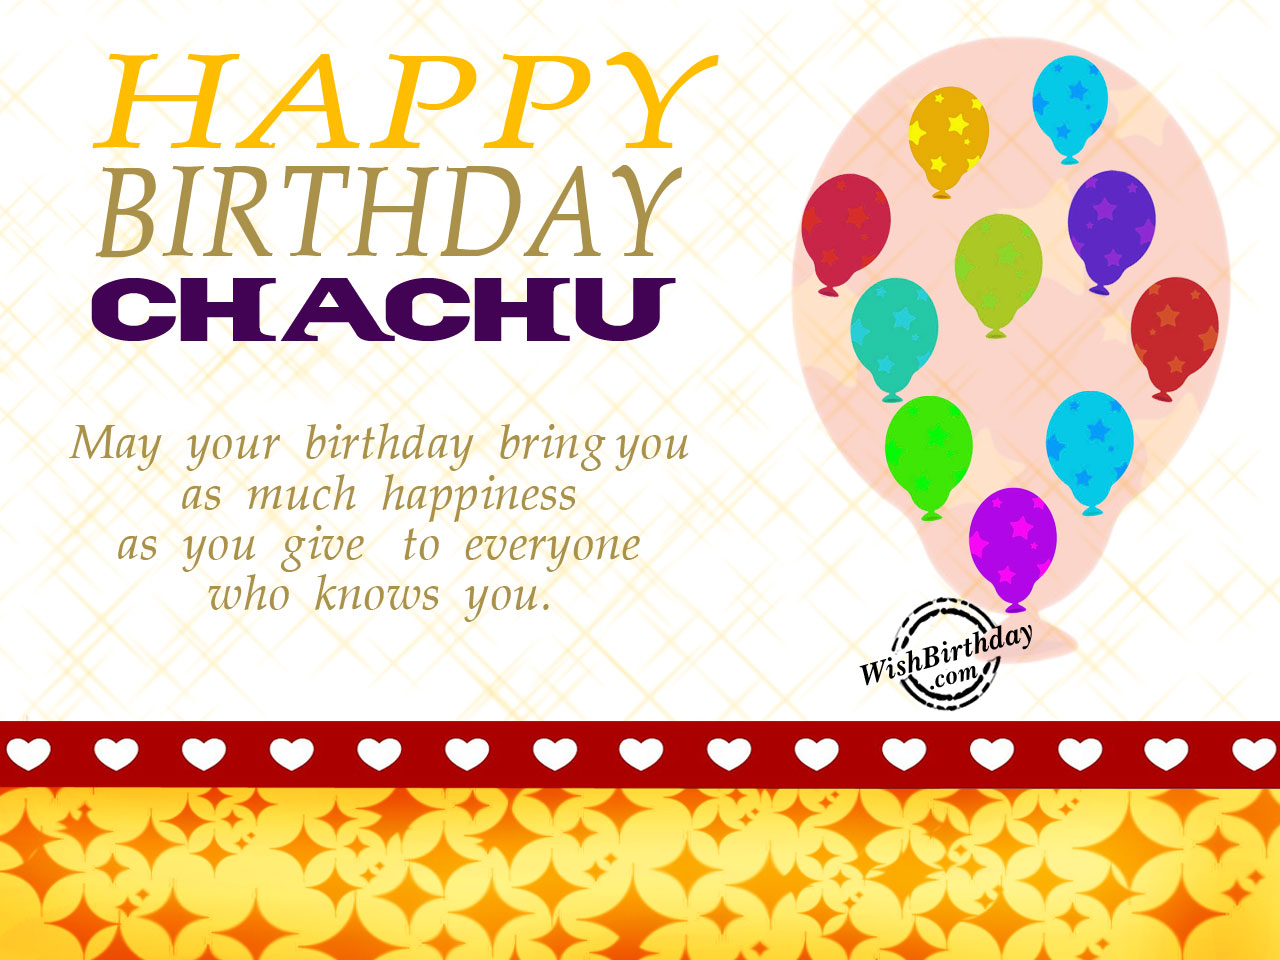 birthday card for chachu ; May-your-birthday-give-you-as-much-happiness